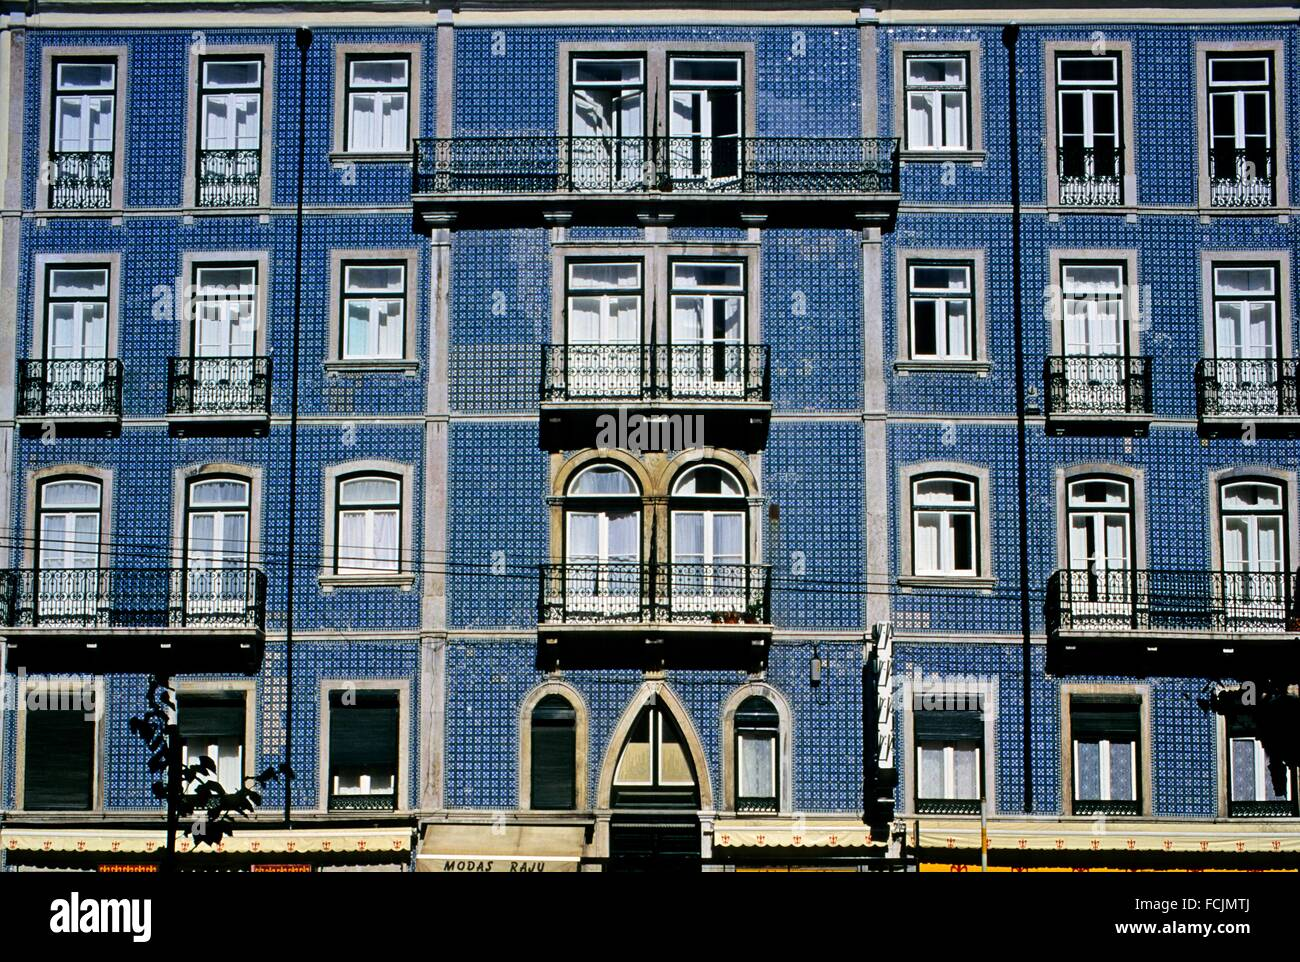 facade covered by glazed tiles, Lisbon, Portugal, Southern Europe. - Stock Image